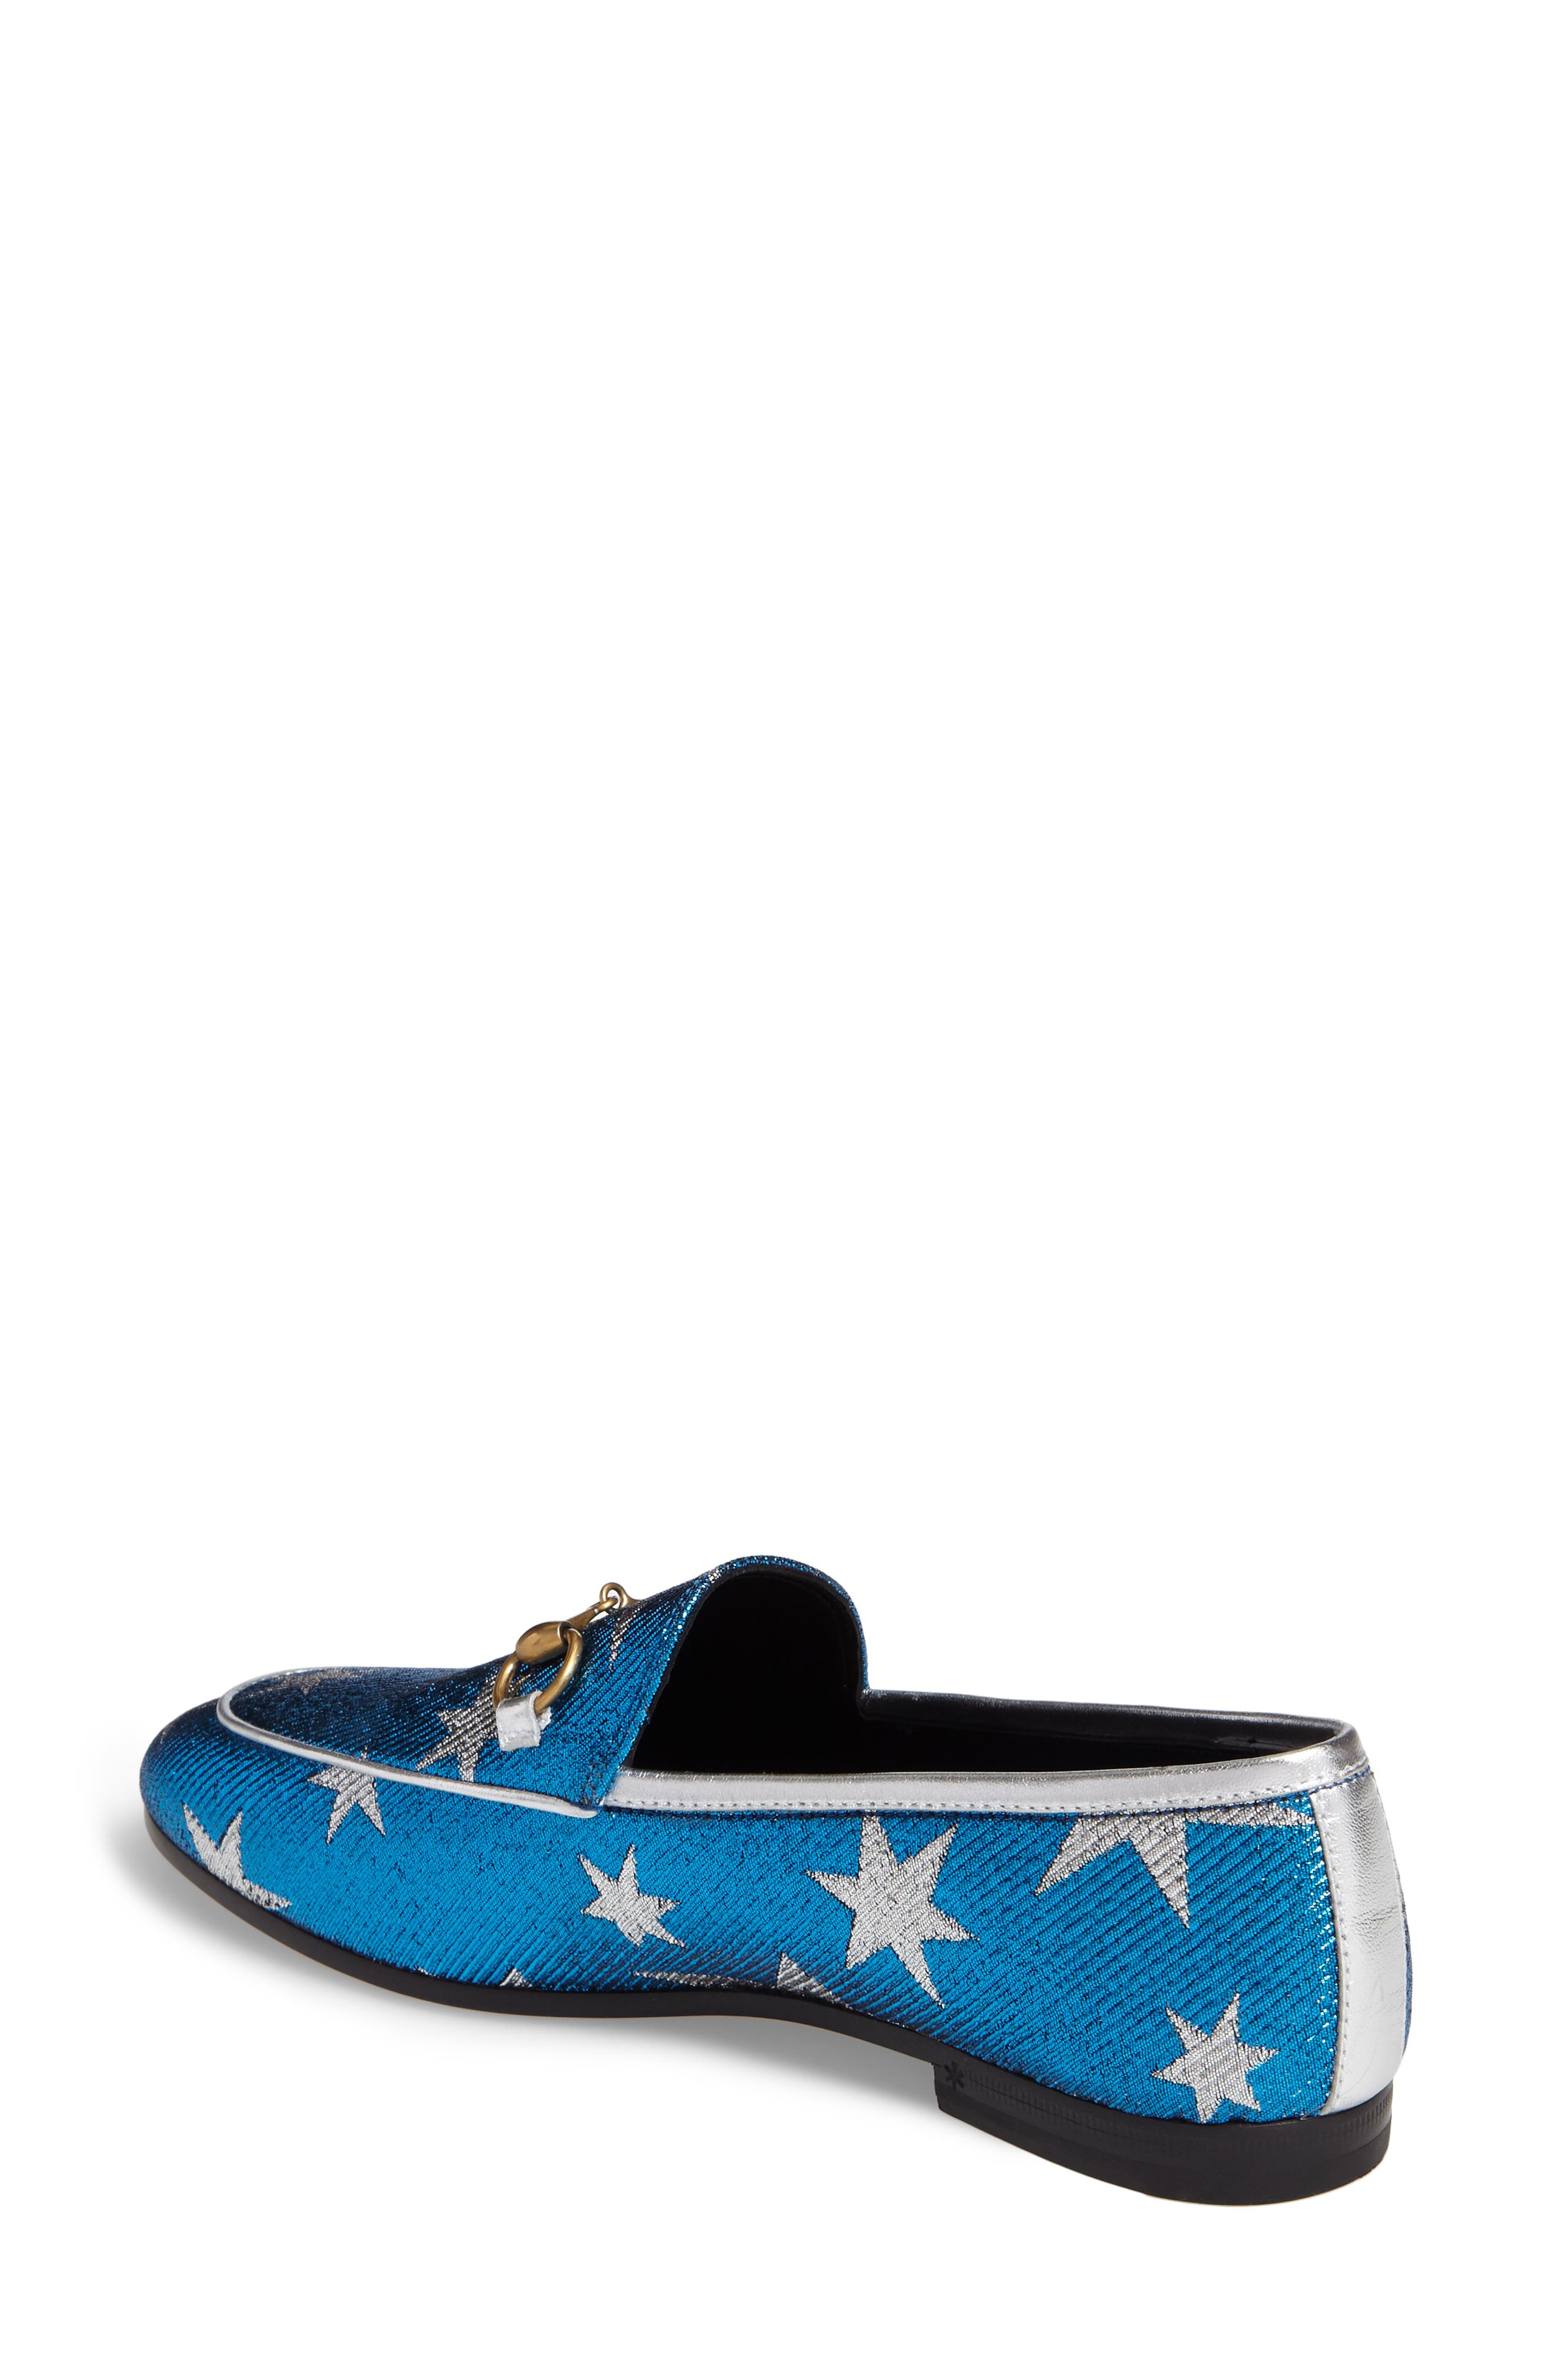 Brixton Star Loafer,                             Alternate thumbnail 2, color,                             424